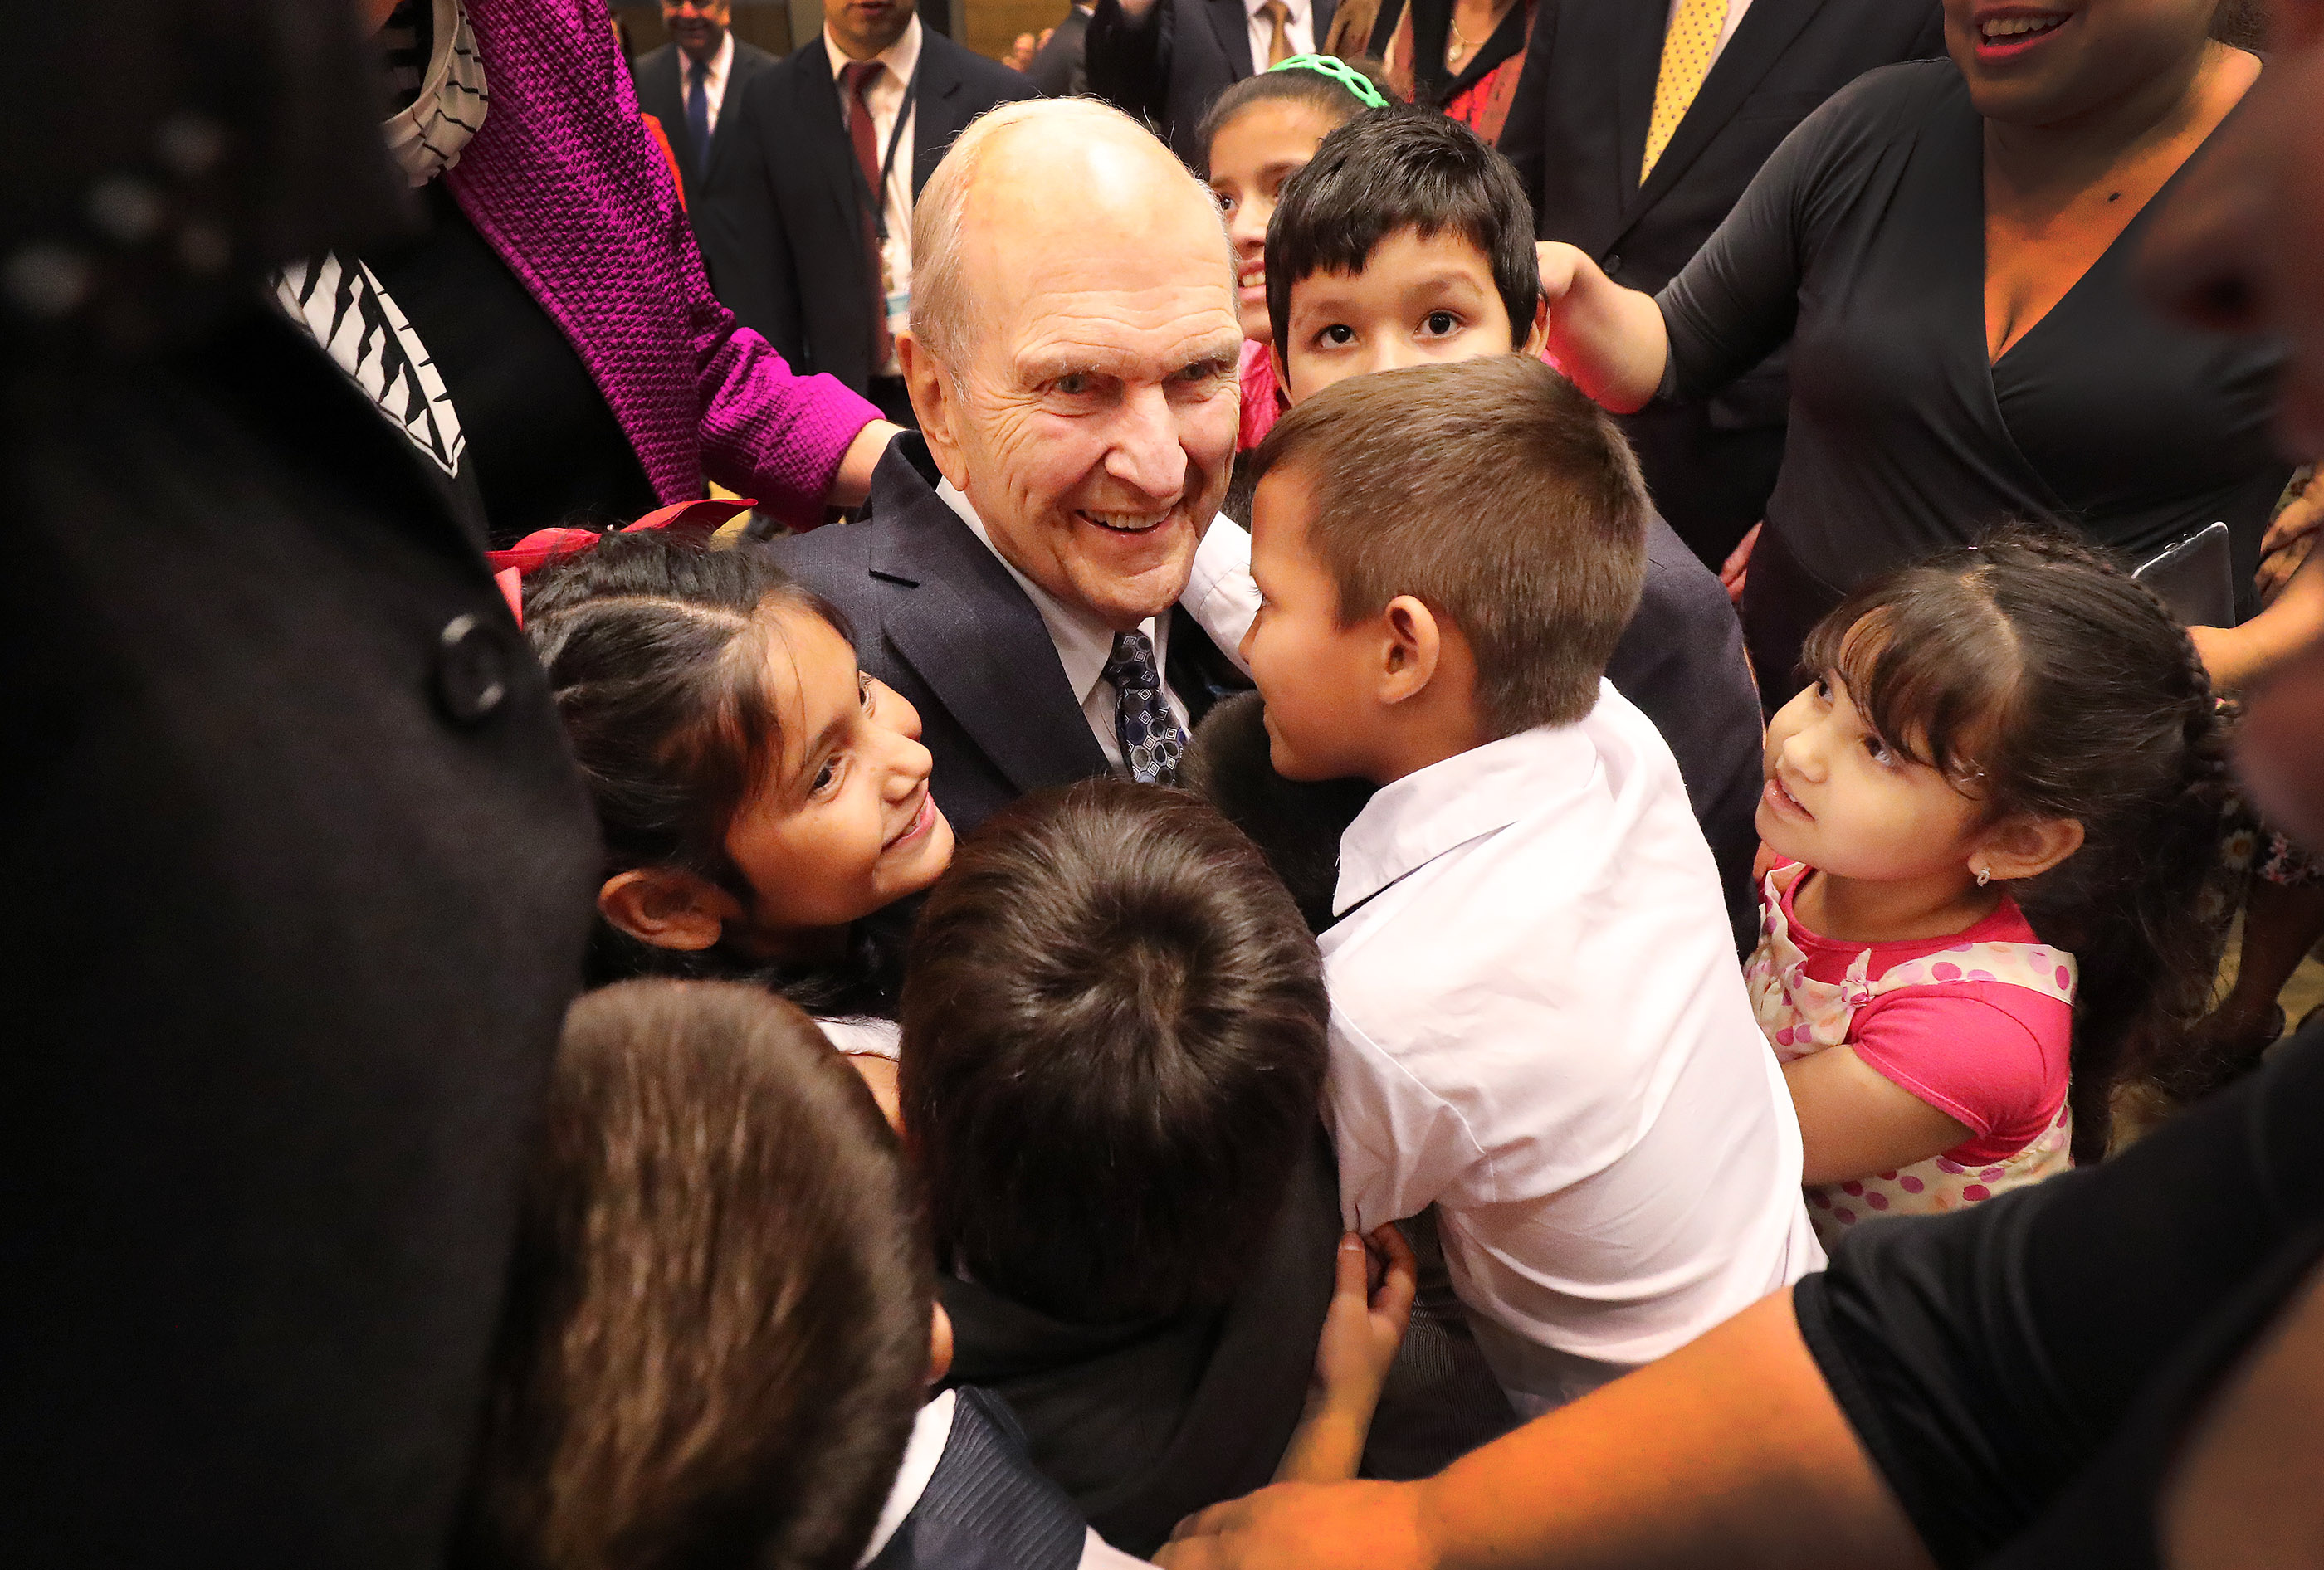 President Russell M. Nelson receives a hug from children after a devotional in Asuncion, Paraguay, on Monday, Oct. 22, 2018.